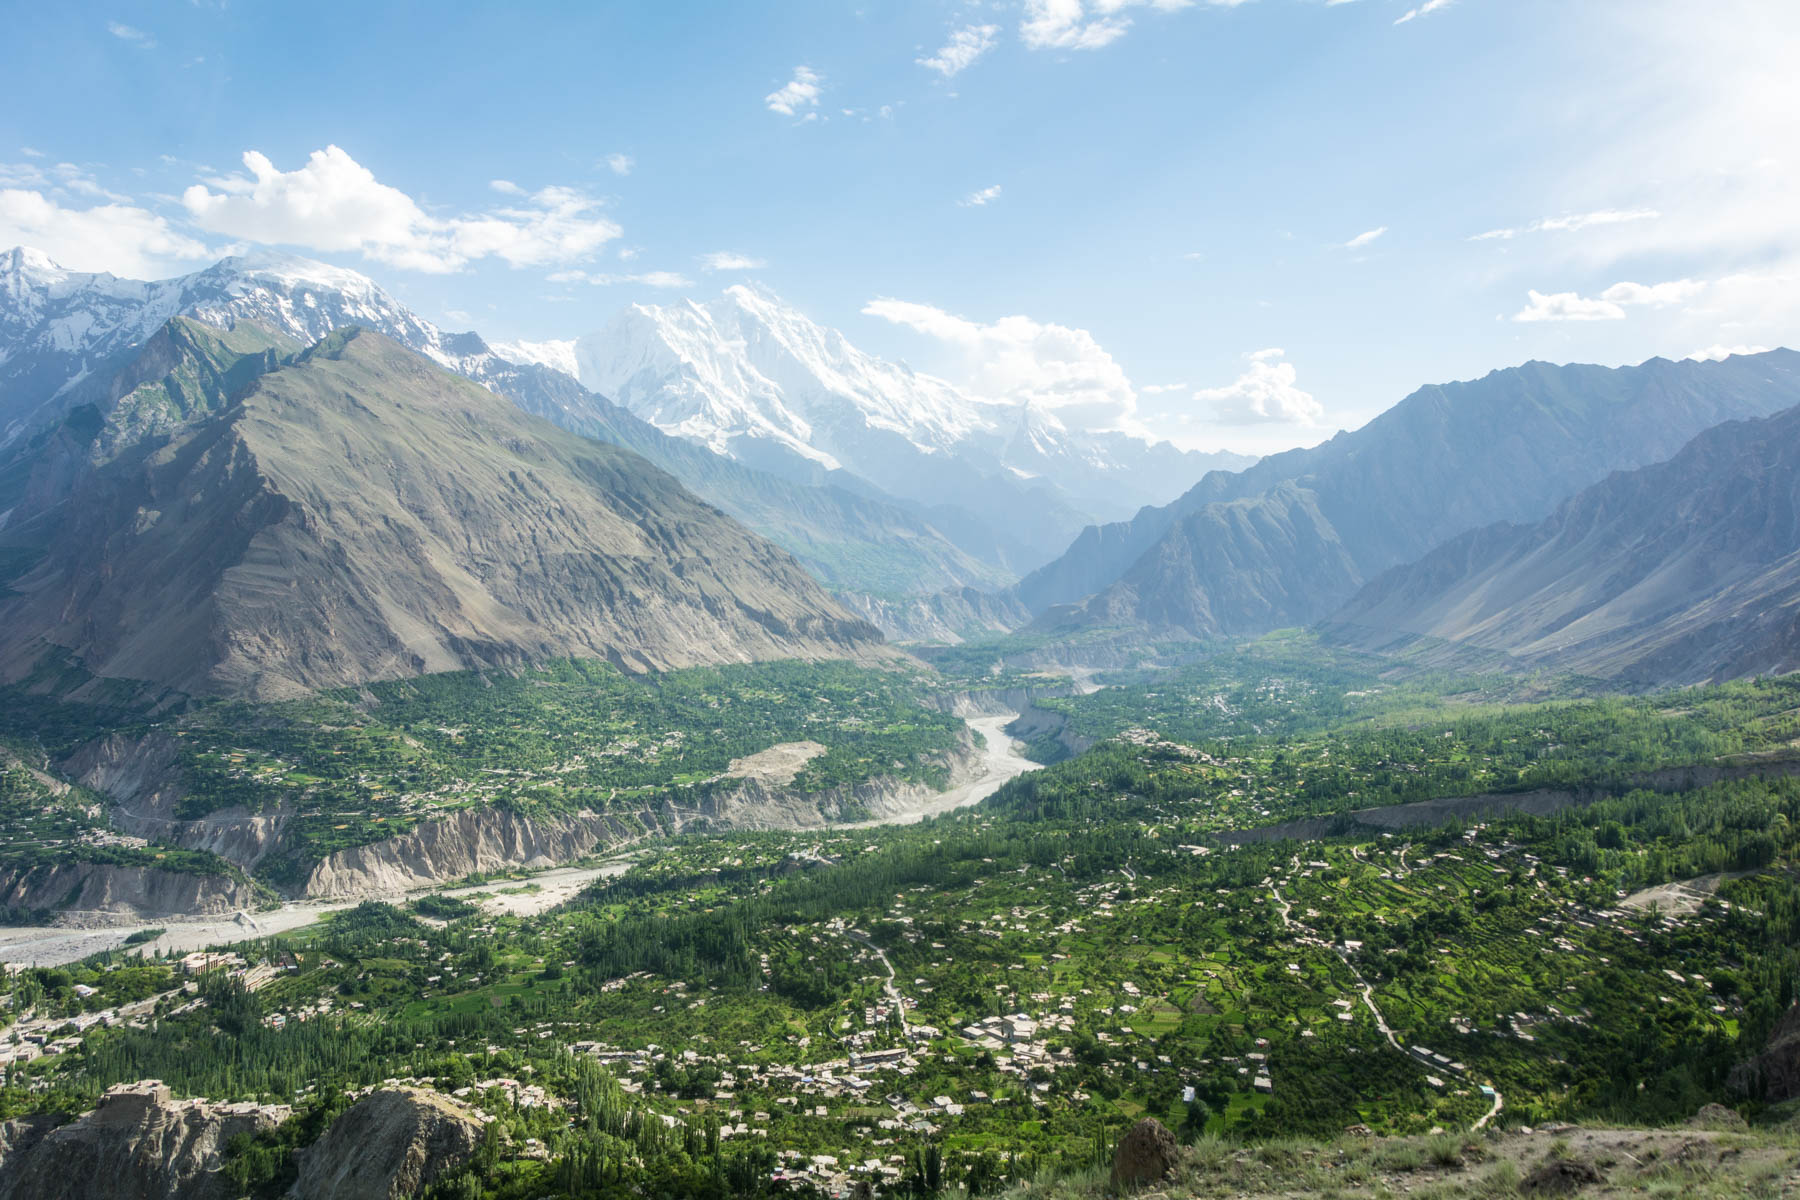 Travel in Pakistan during Ramadan - Empty mountains of Hunza Valley before Ramadan's end - Lost With Purpose